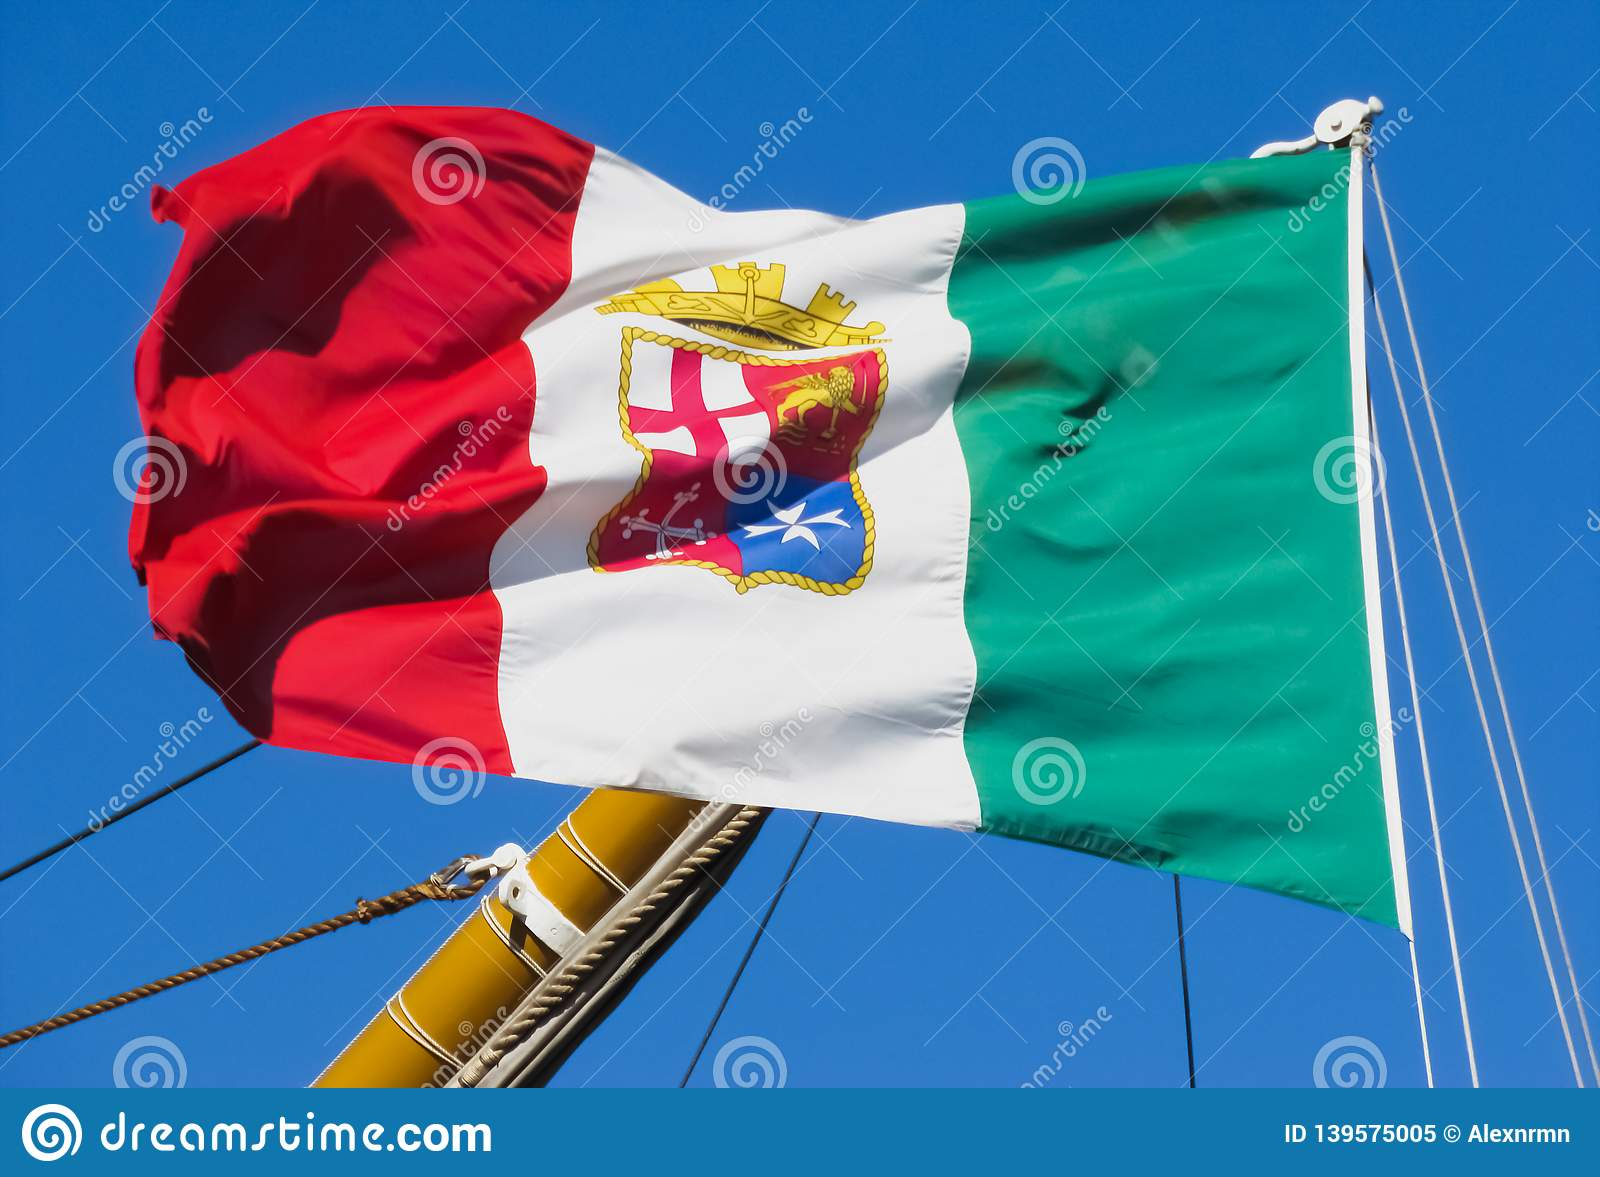 The naval flag of Italy flutters on the mast.